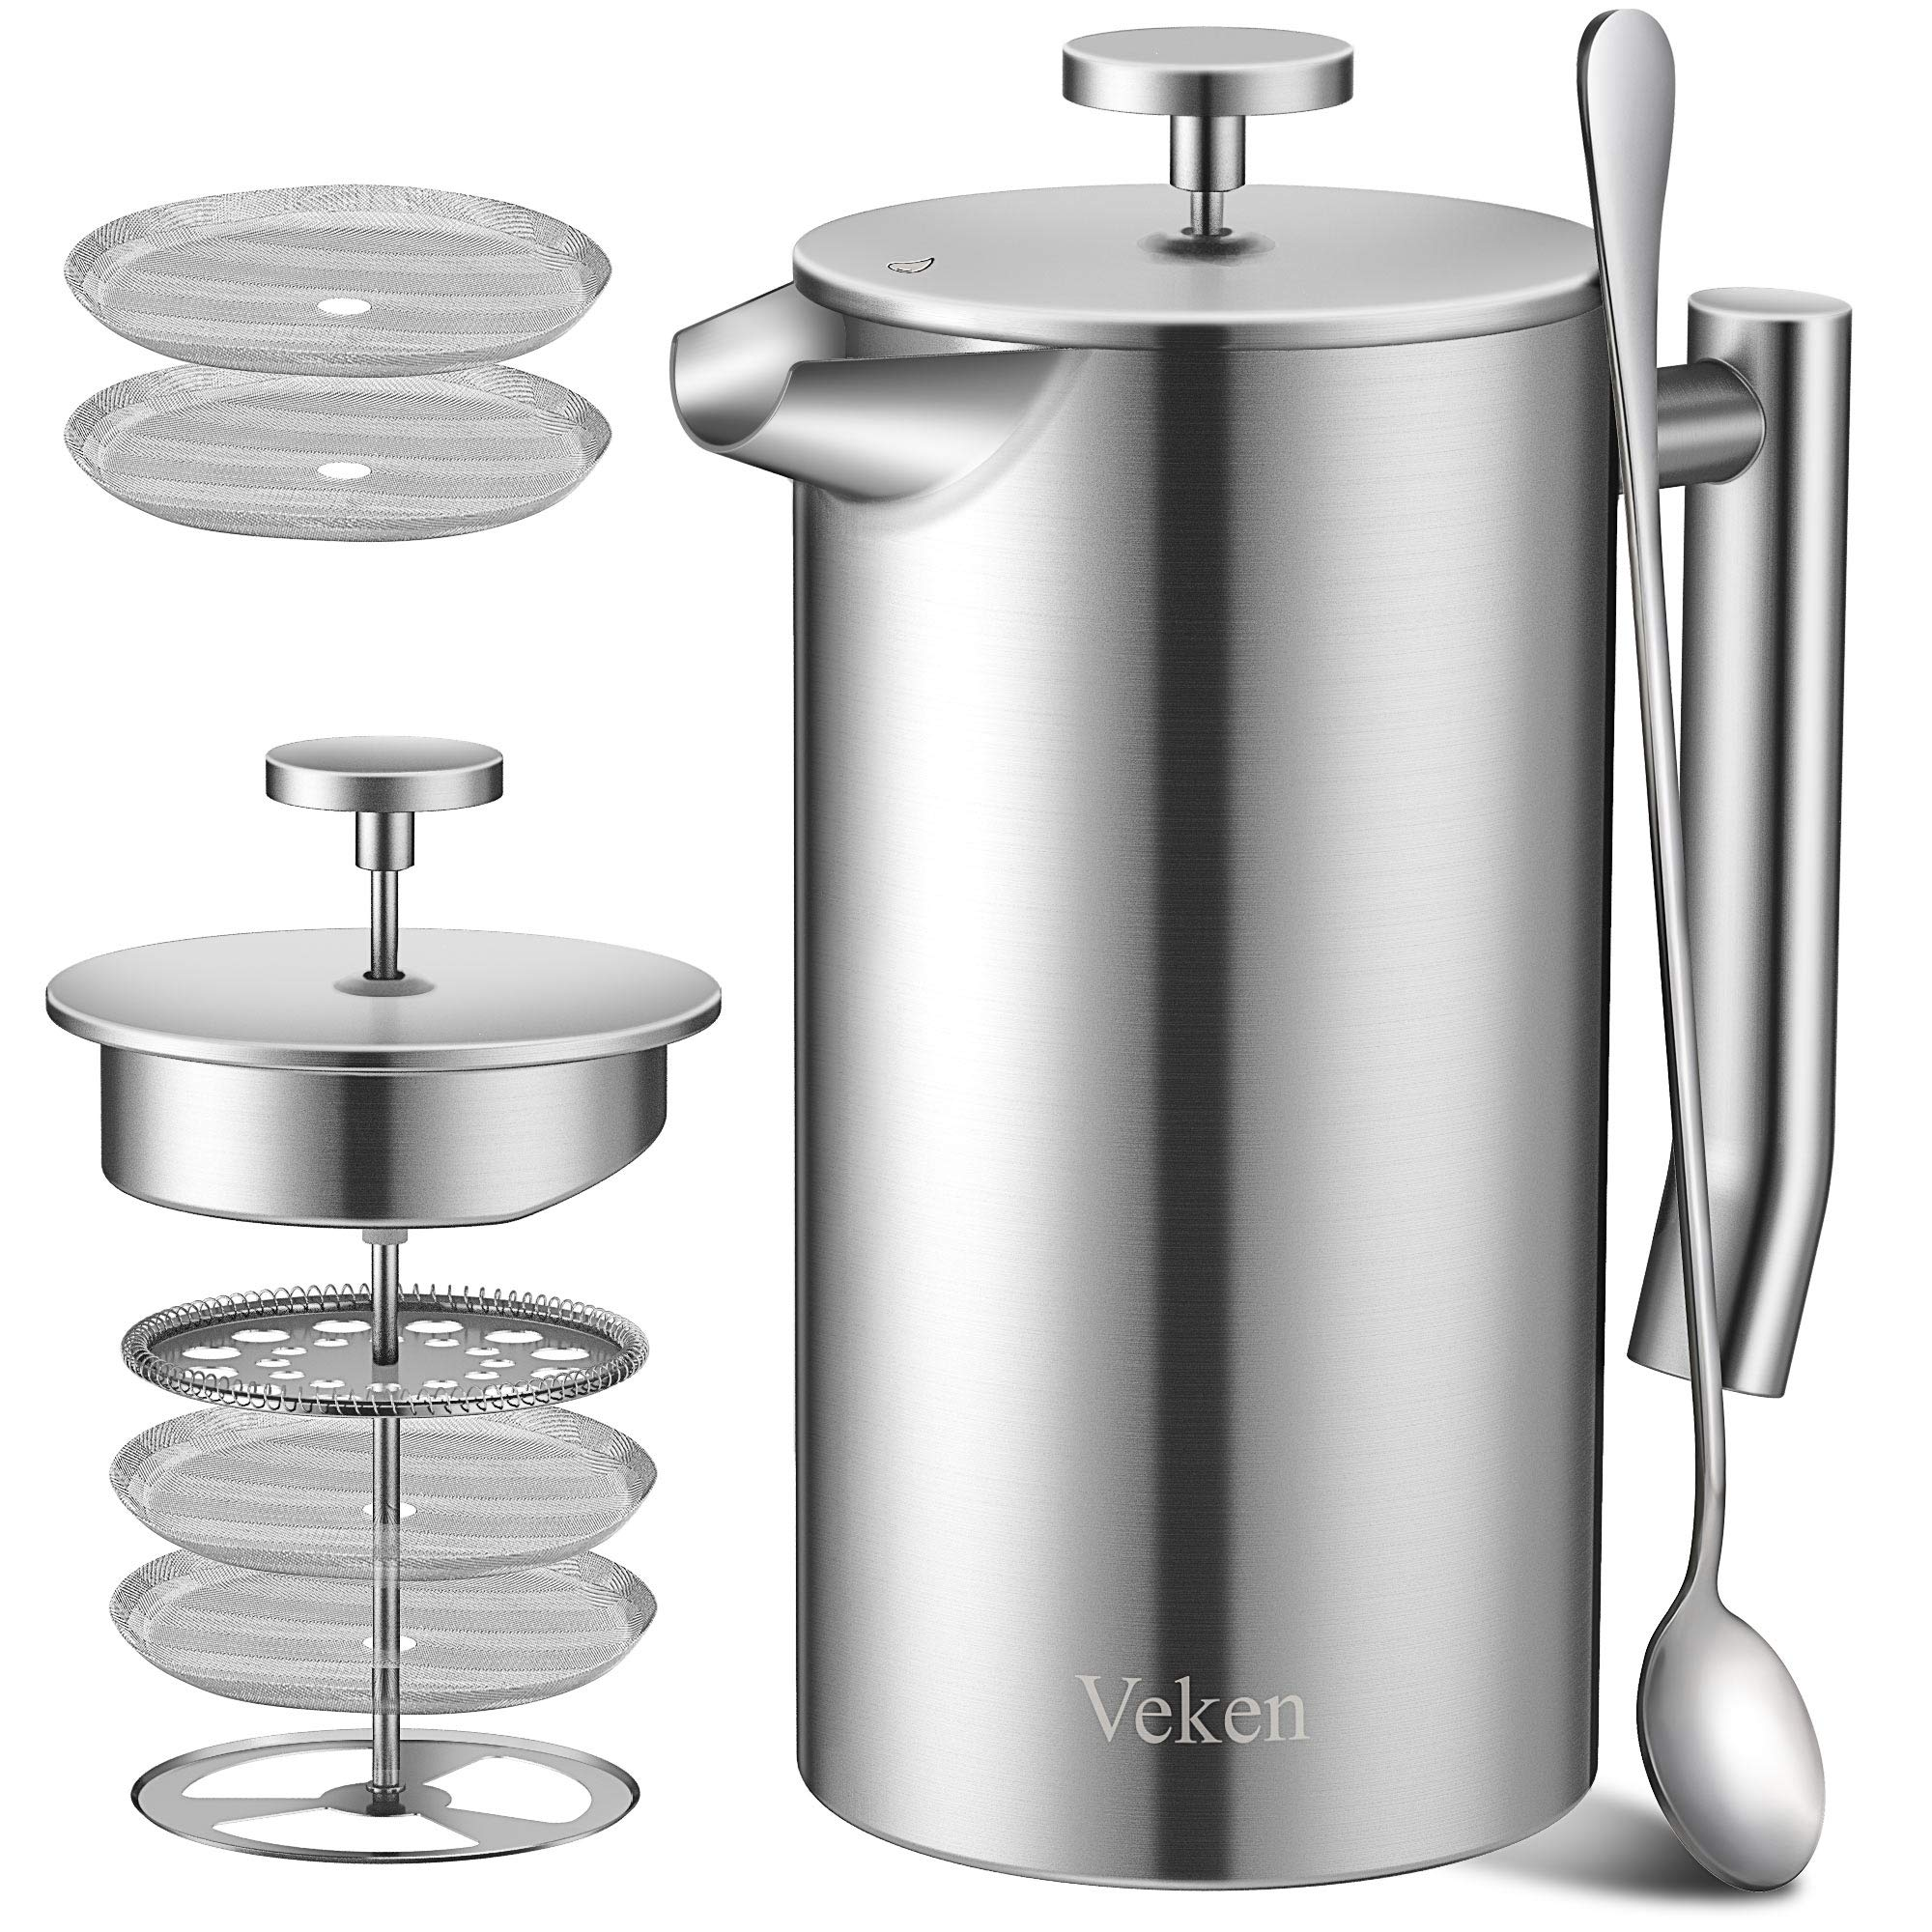 Veken French Press Double-Wall 18/10 Stainless Steel Coffee & Tea Maker, Multi-Screen System, 2 Extra Filters Included, Rust-Free, Dishwasher Safe, (1L) by Veken